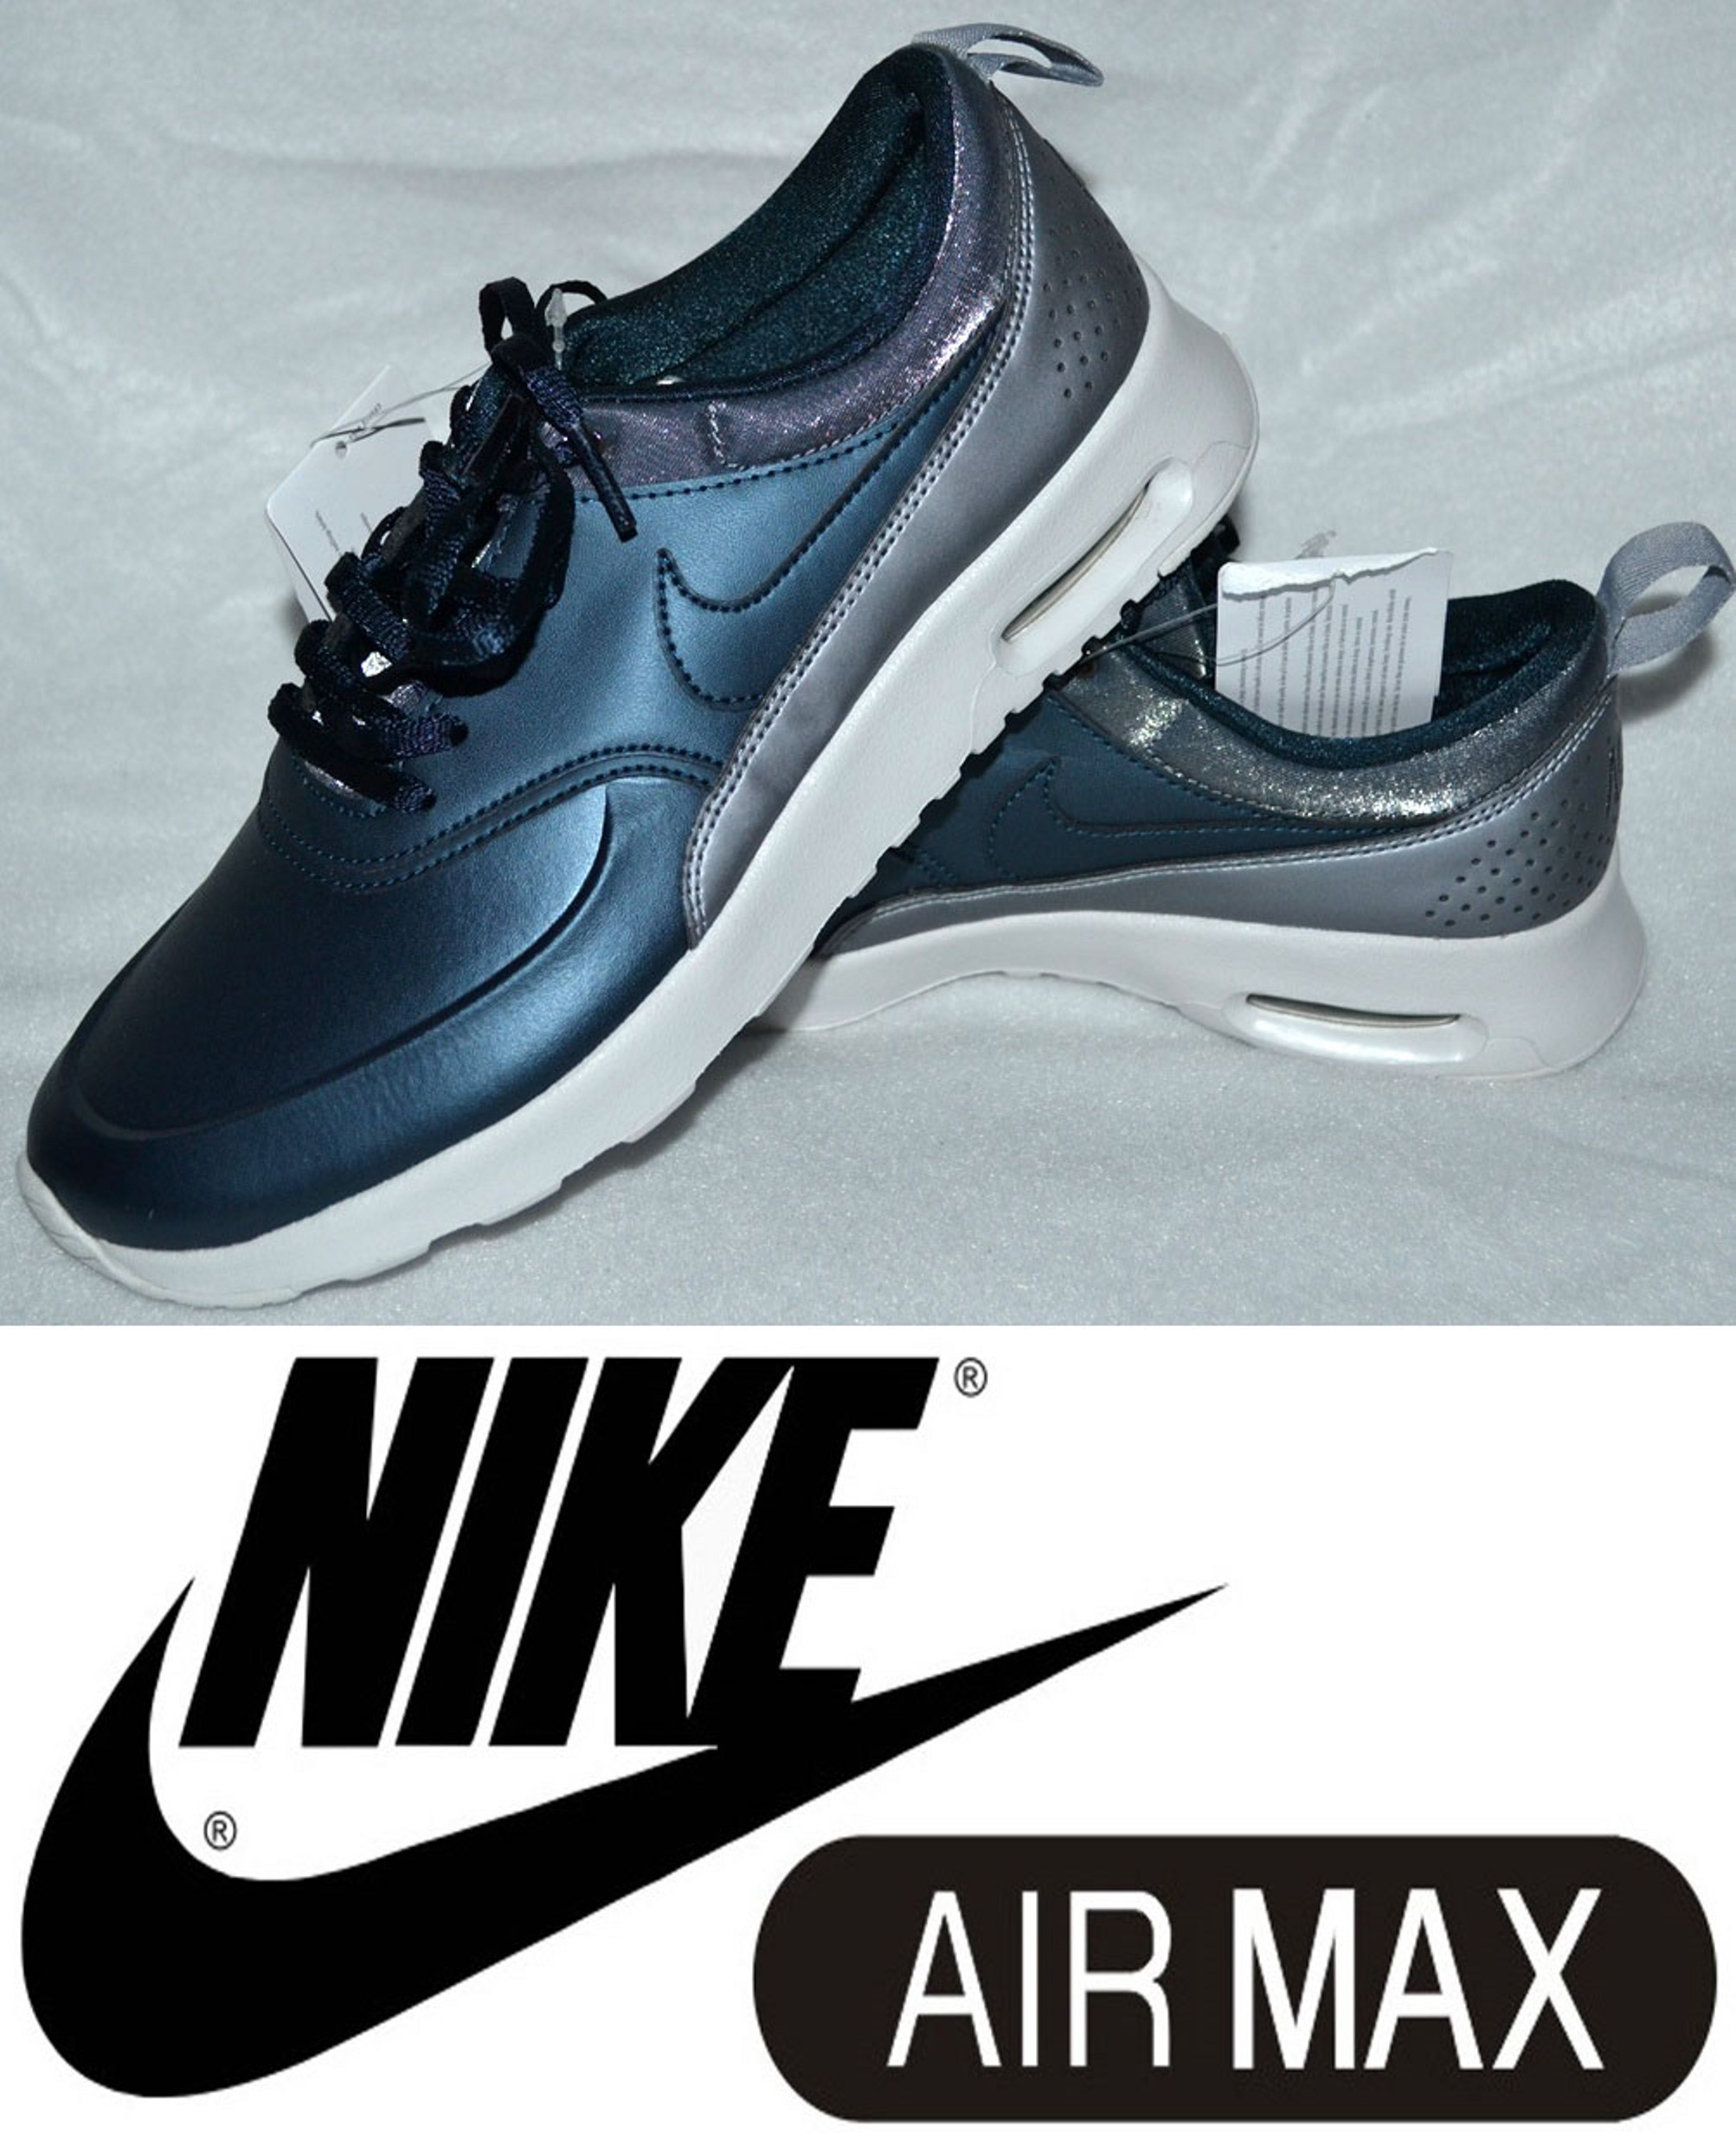 METALICKÉ Tenisky zn. NIKE AIR MAX THEA vel. 38